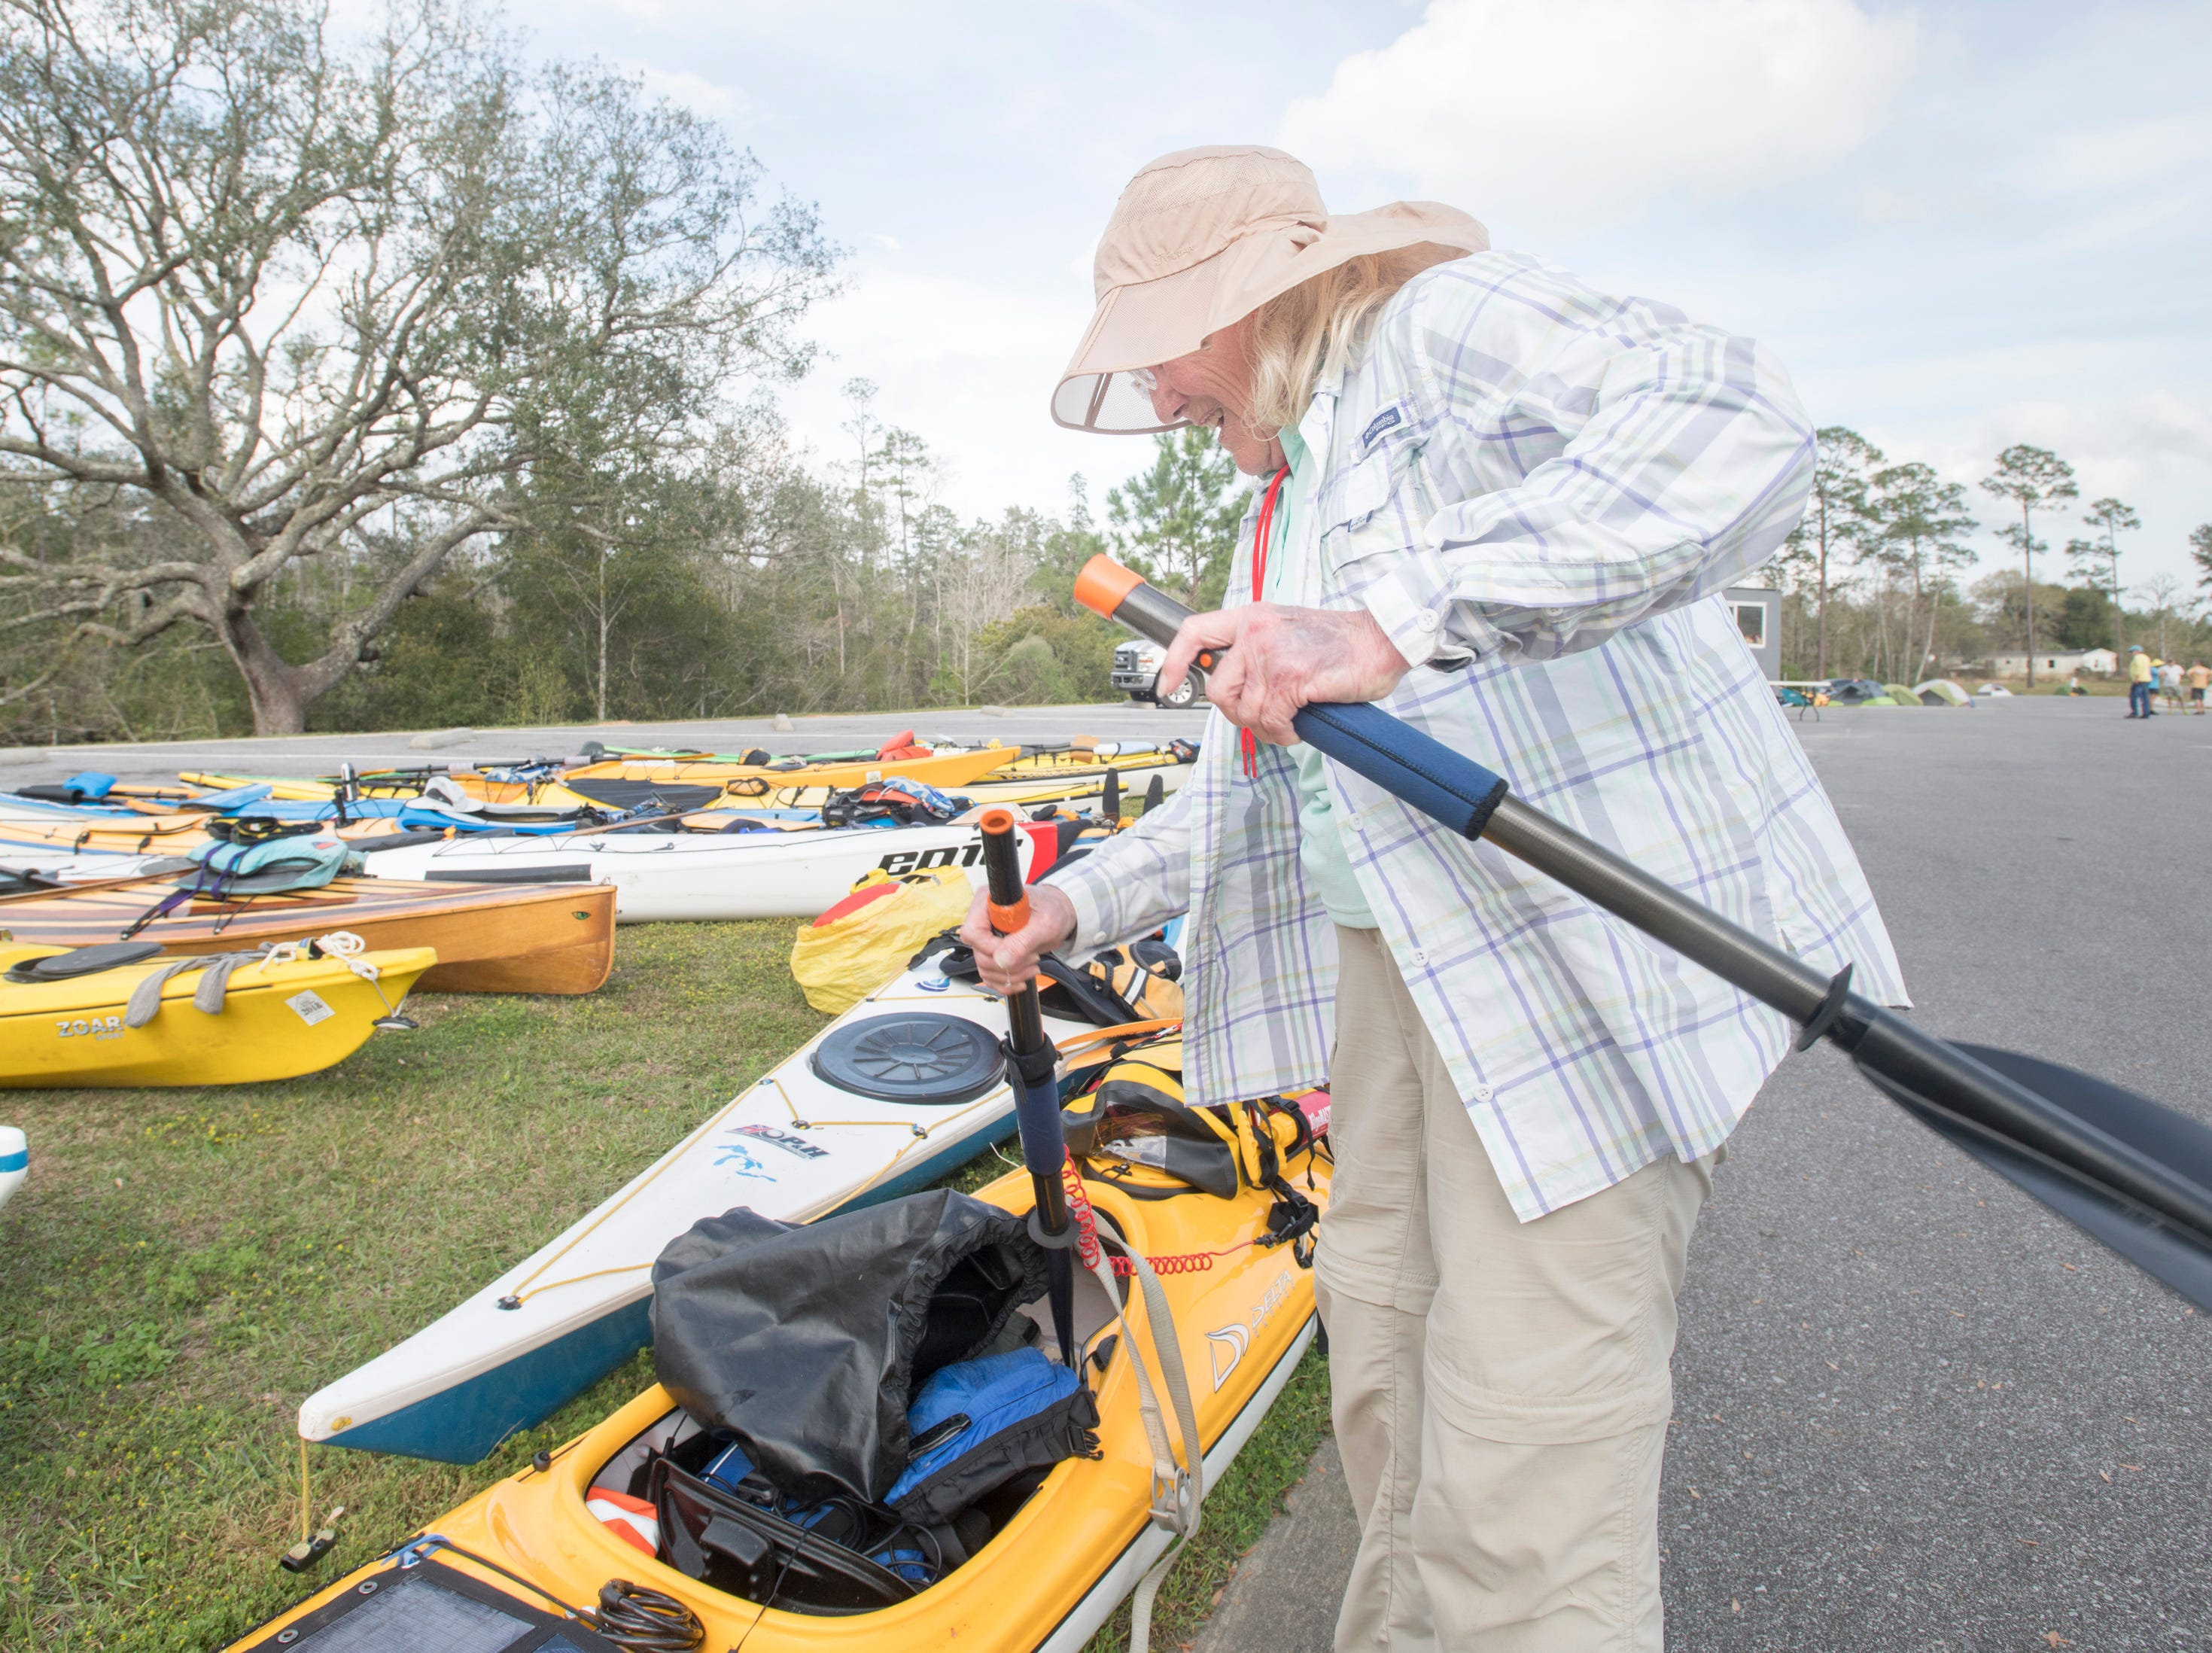 Diane Rickman-Buckalew stores her gear on her kayak at the Wilson Robertson Boat Ramp off the Perdido River in Pensacola on Monday, March 11, 2019.  Paddle Florida is hosting 60 paddlers on a 5-day, 60-mile journey from Otto Hill to Perdido Pass.  Florida is currently working with Alabama to establish a paddling trail on the Perdido River.